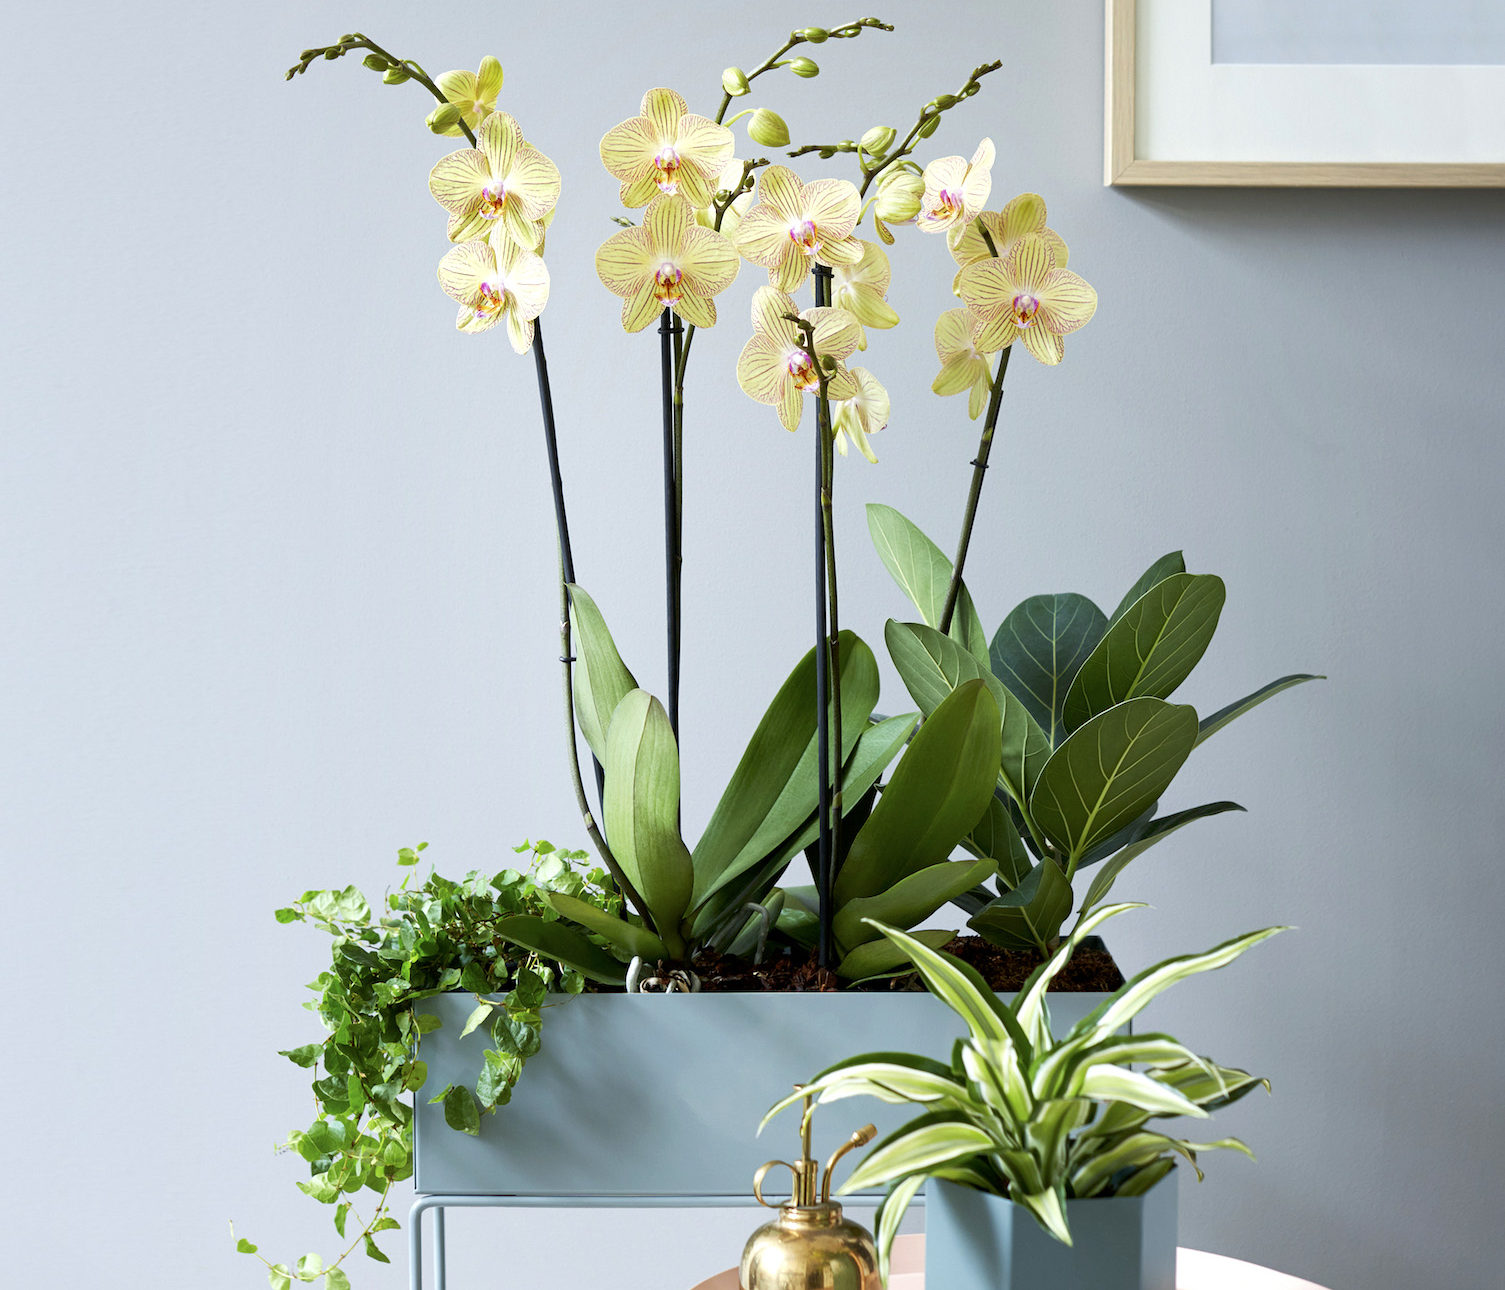 4 original ways to style an orchid at home